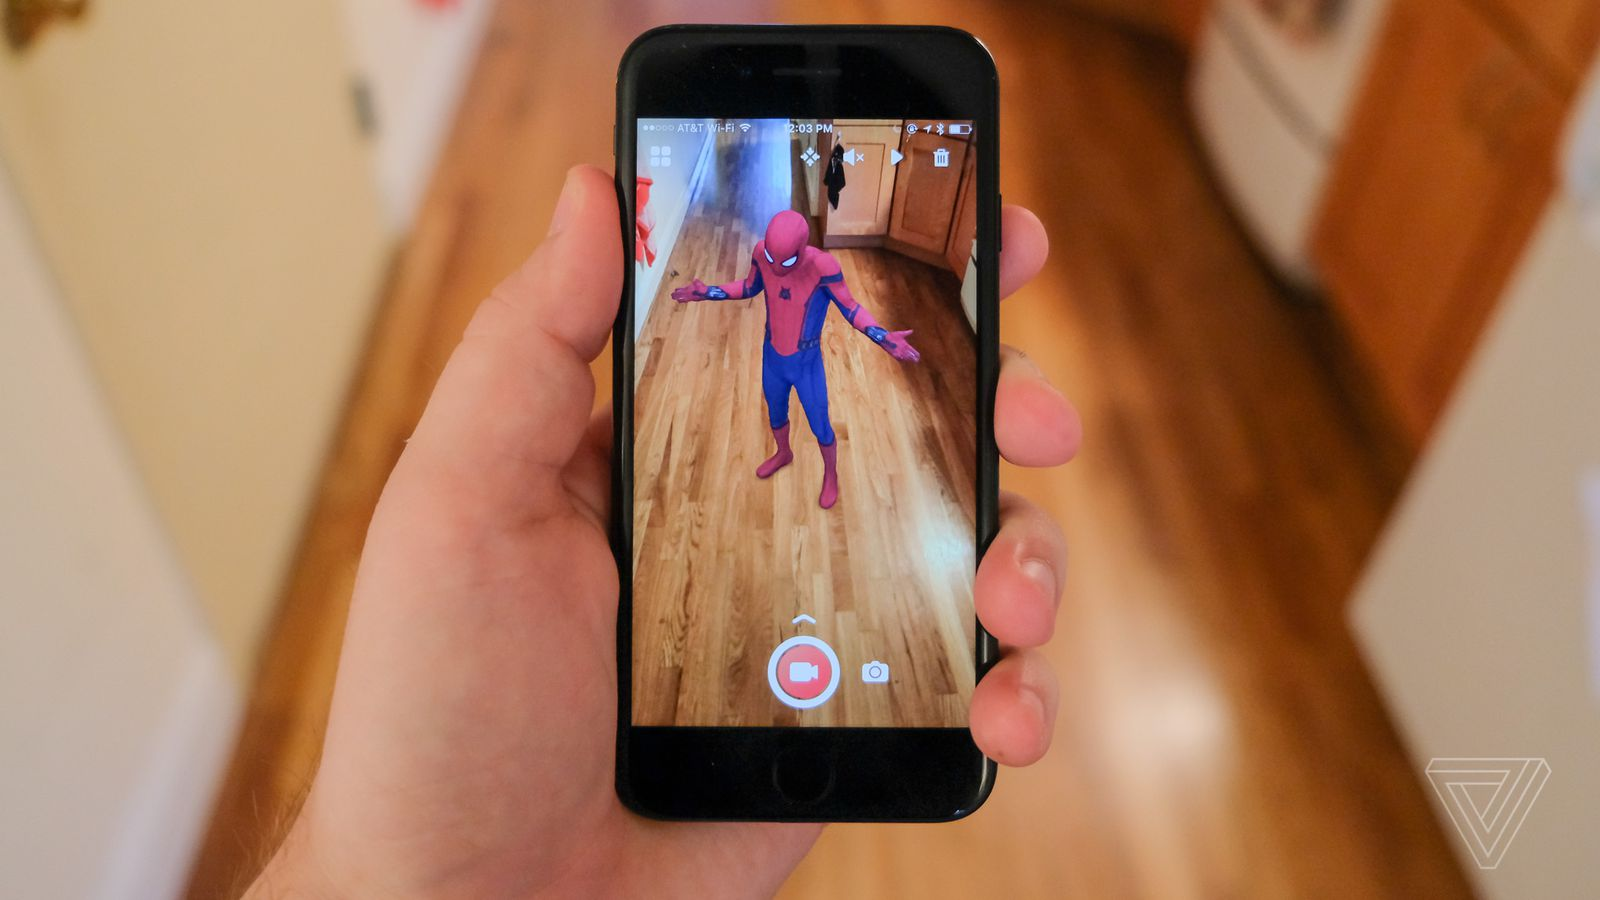 The Holo app is a tease of what's to come with AR on the iPhone